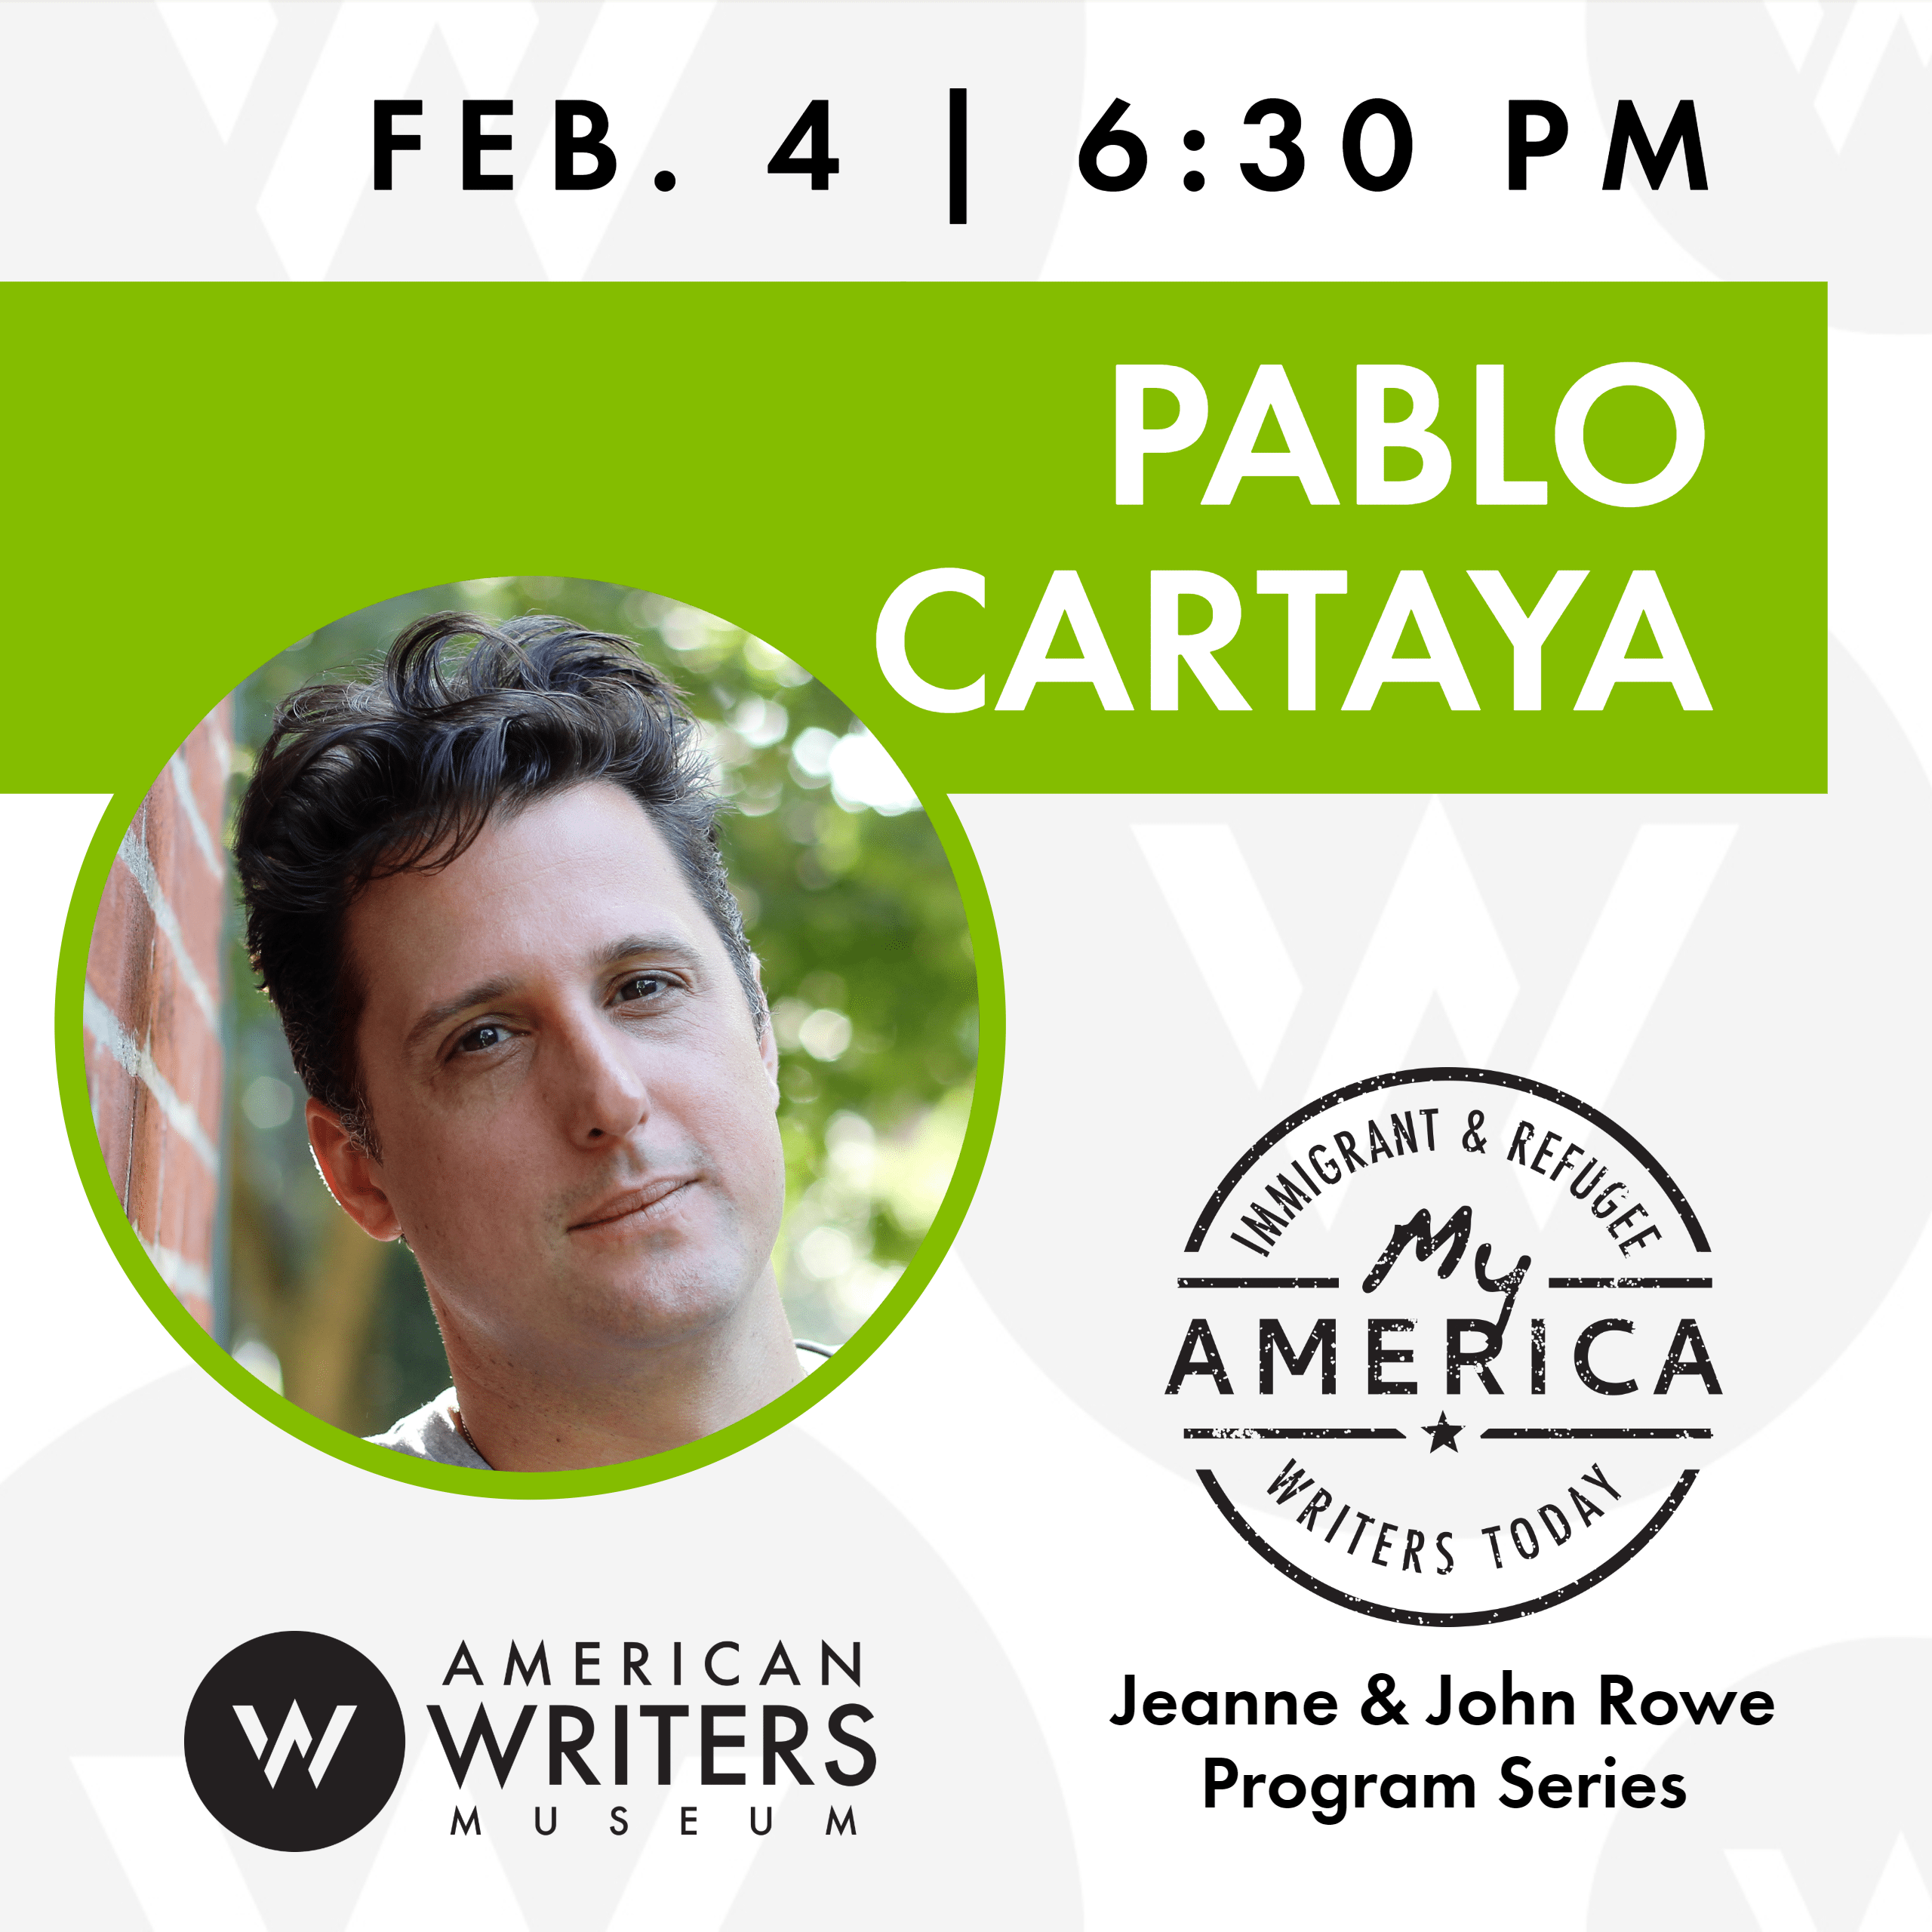 Pablo Cartaya at the American Writers Museum on February 4, 2019